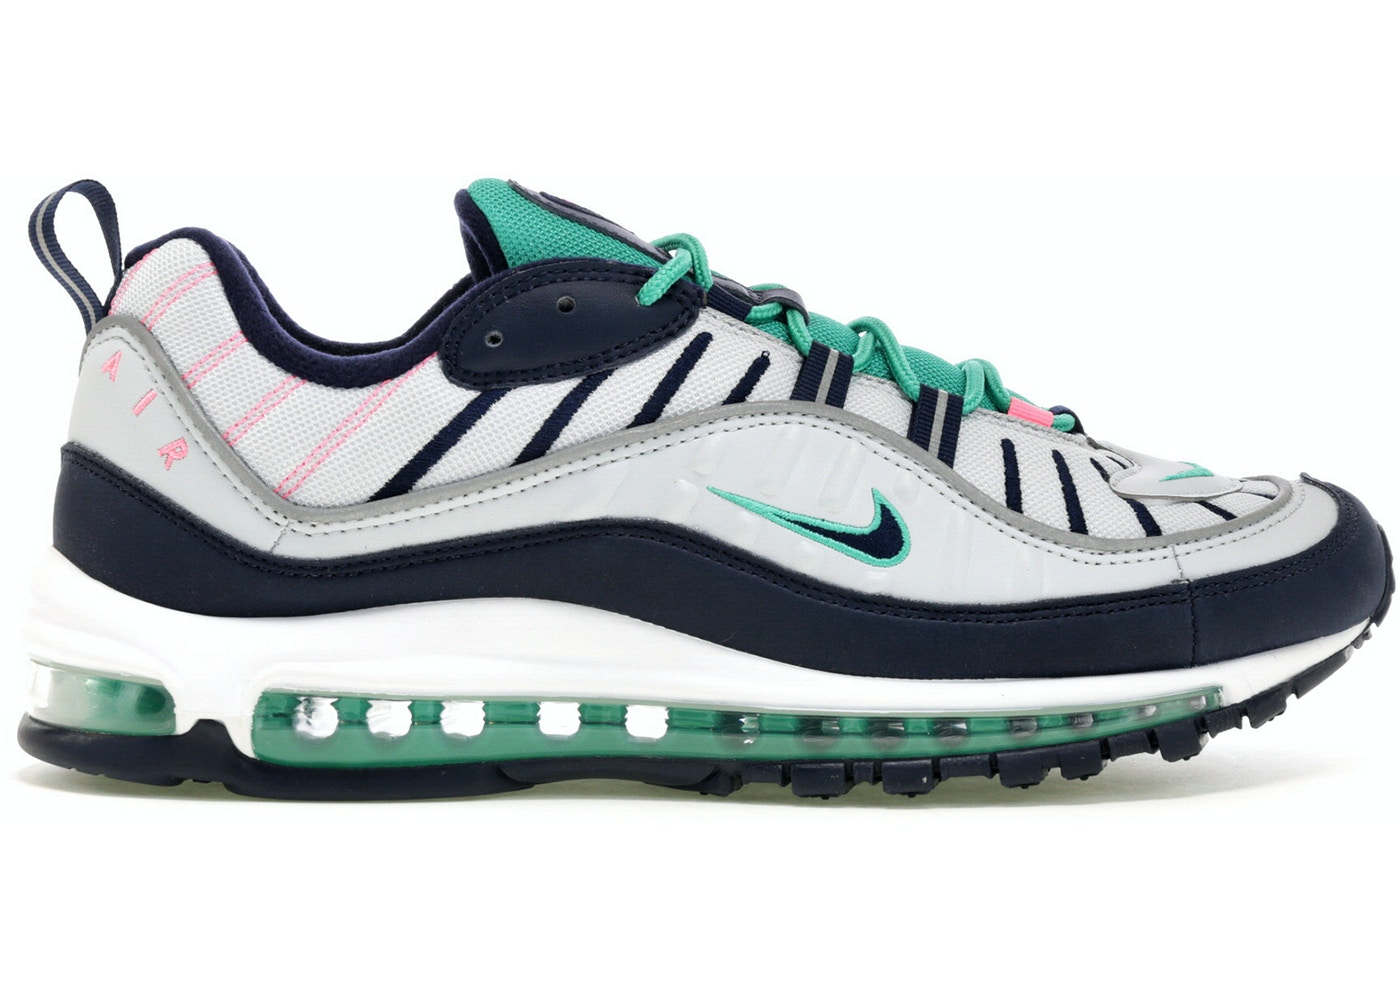 official photos 2fe46 a3ed4 Air Max 98 Tidal Wave - 640744-005